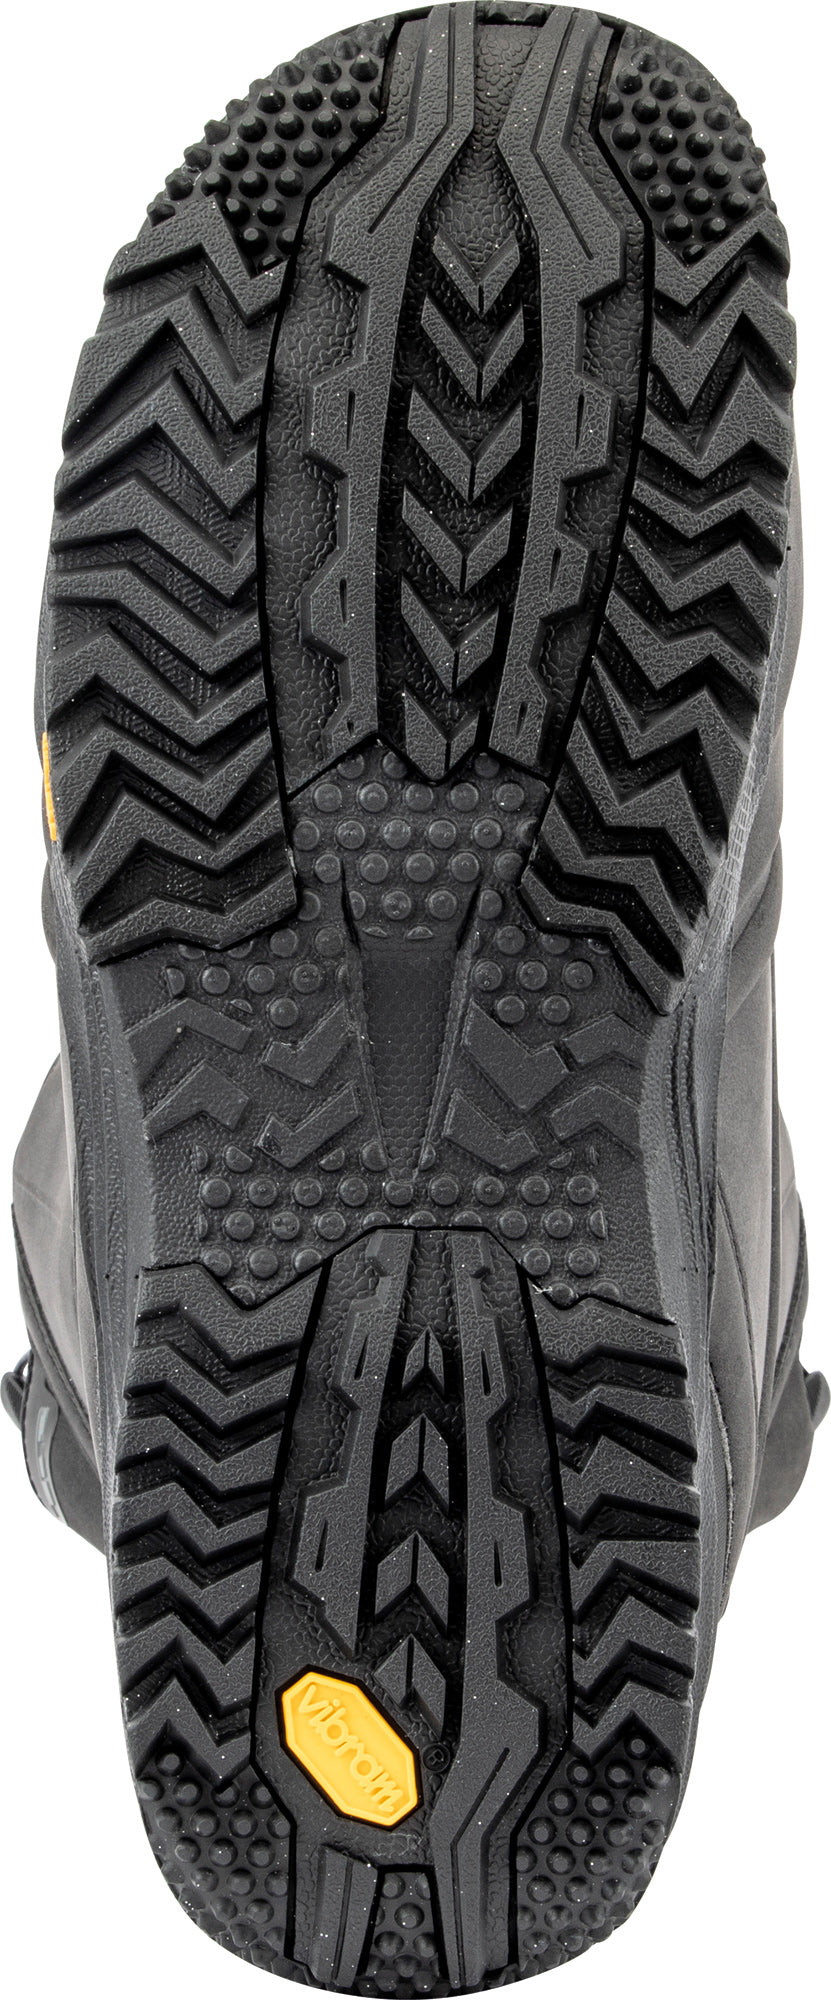 2020 Nitro Team TLS Snowboard Boot in Black